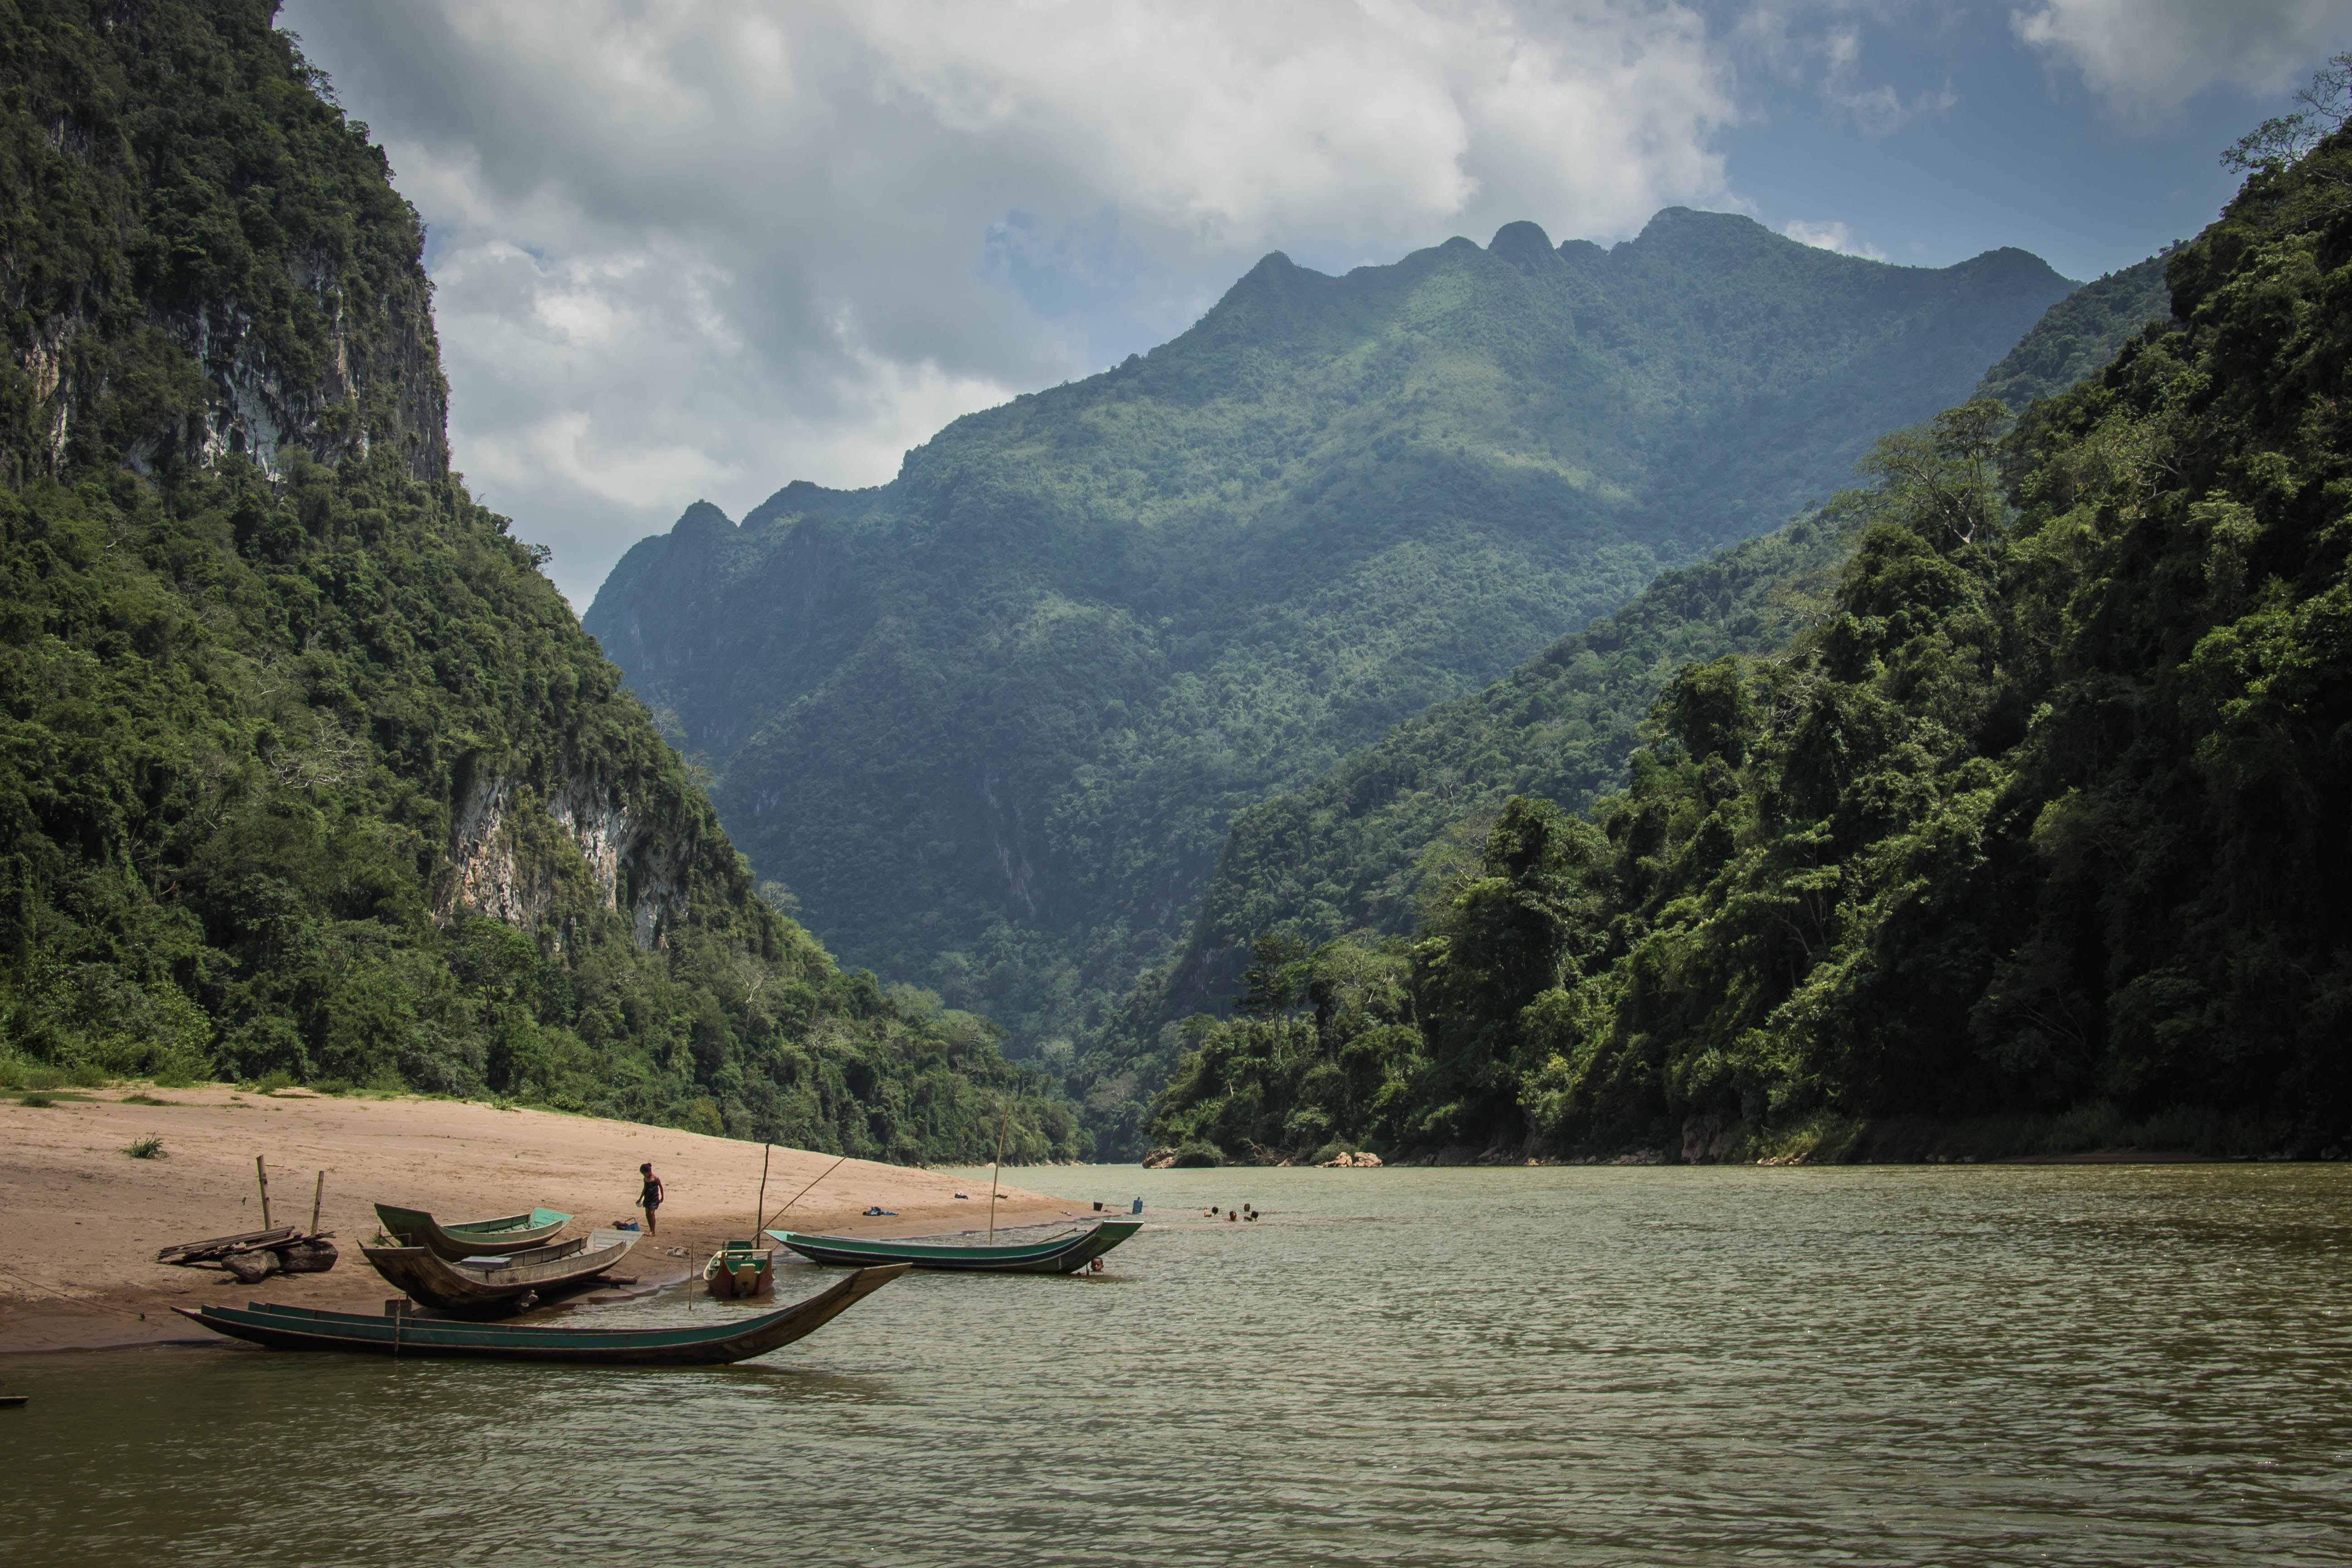 Canoes on a sandy river beach in the mountains in Laos